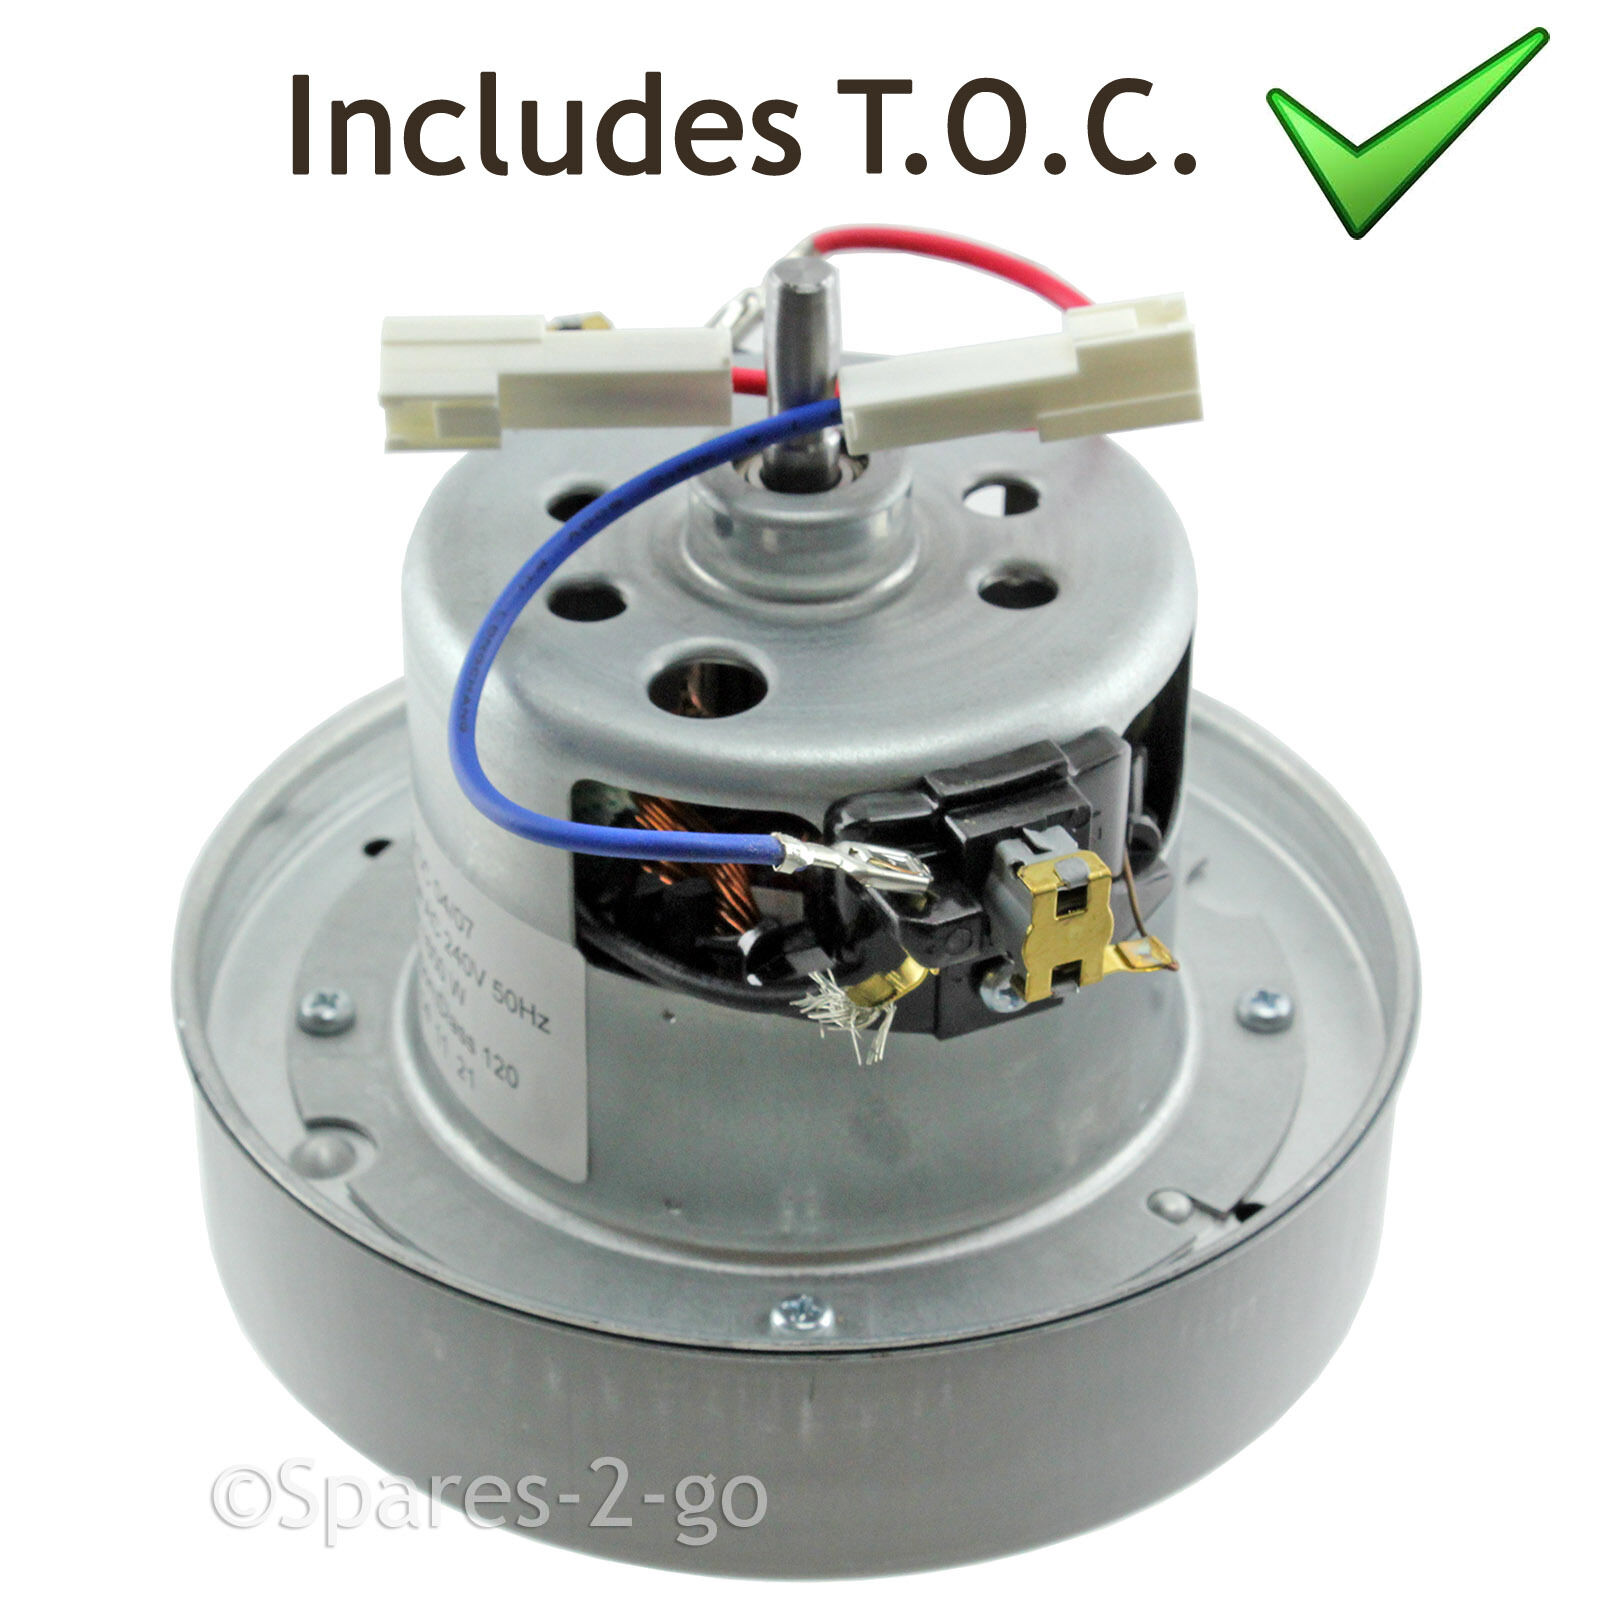 Vacuum Cleaner Hoover Motor Fits DYSON DC27 DC33 YV 2200 YDK 240V + TOC